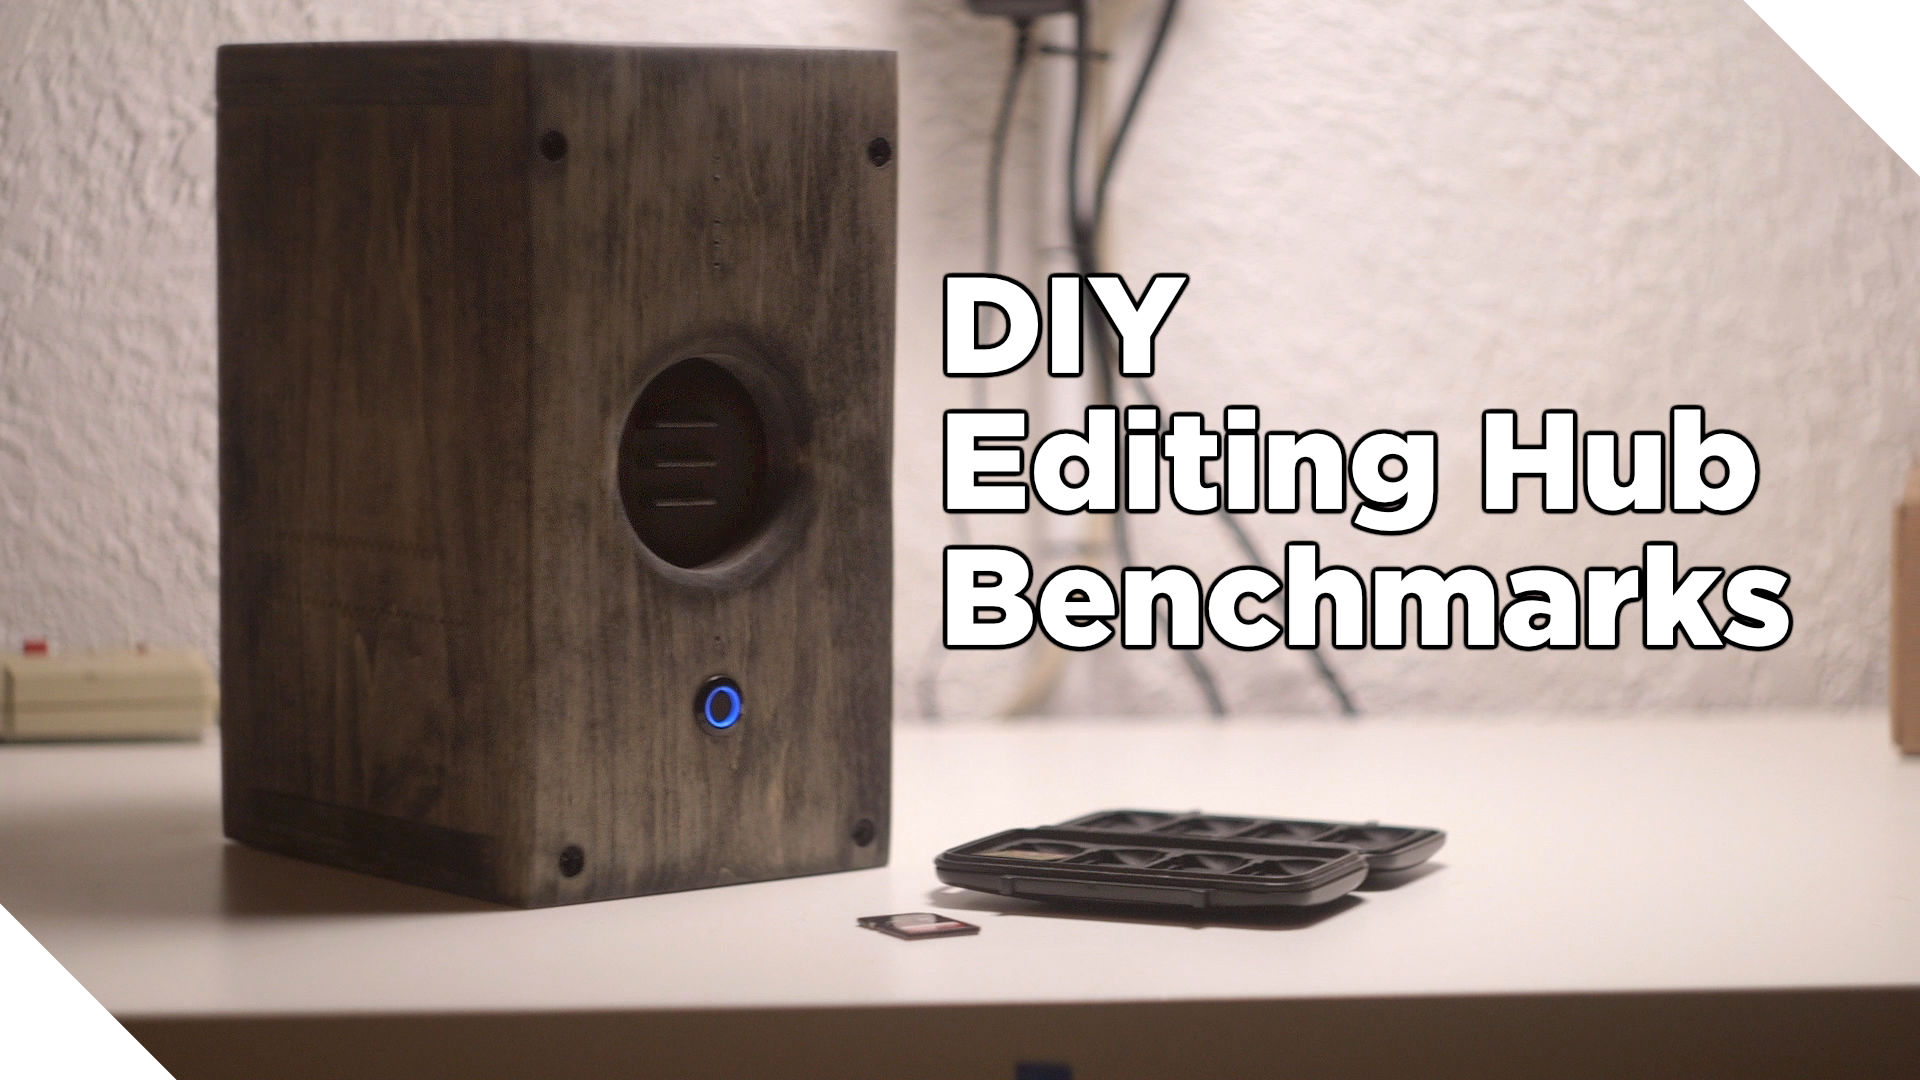 DIY Editing Hub Speed Benchmarks